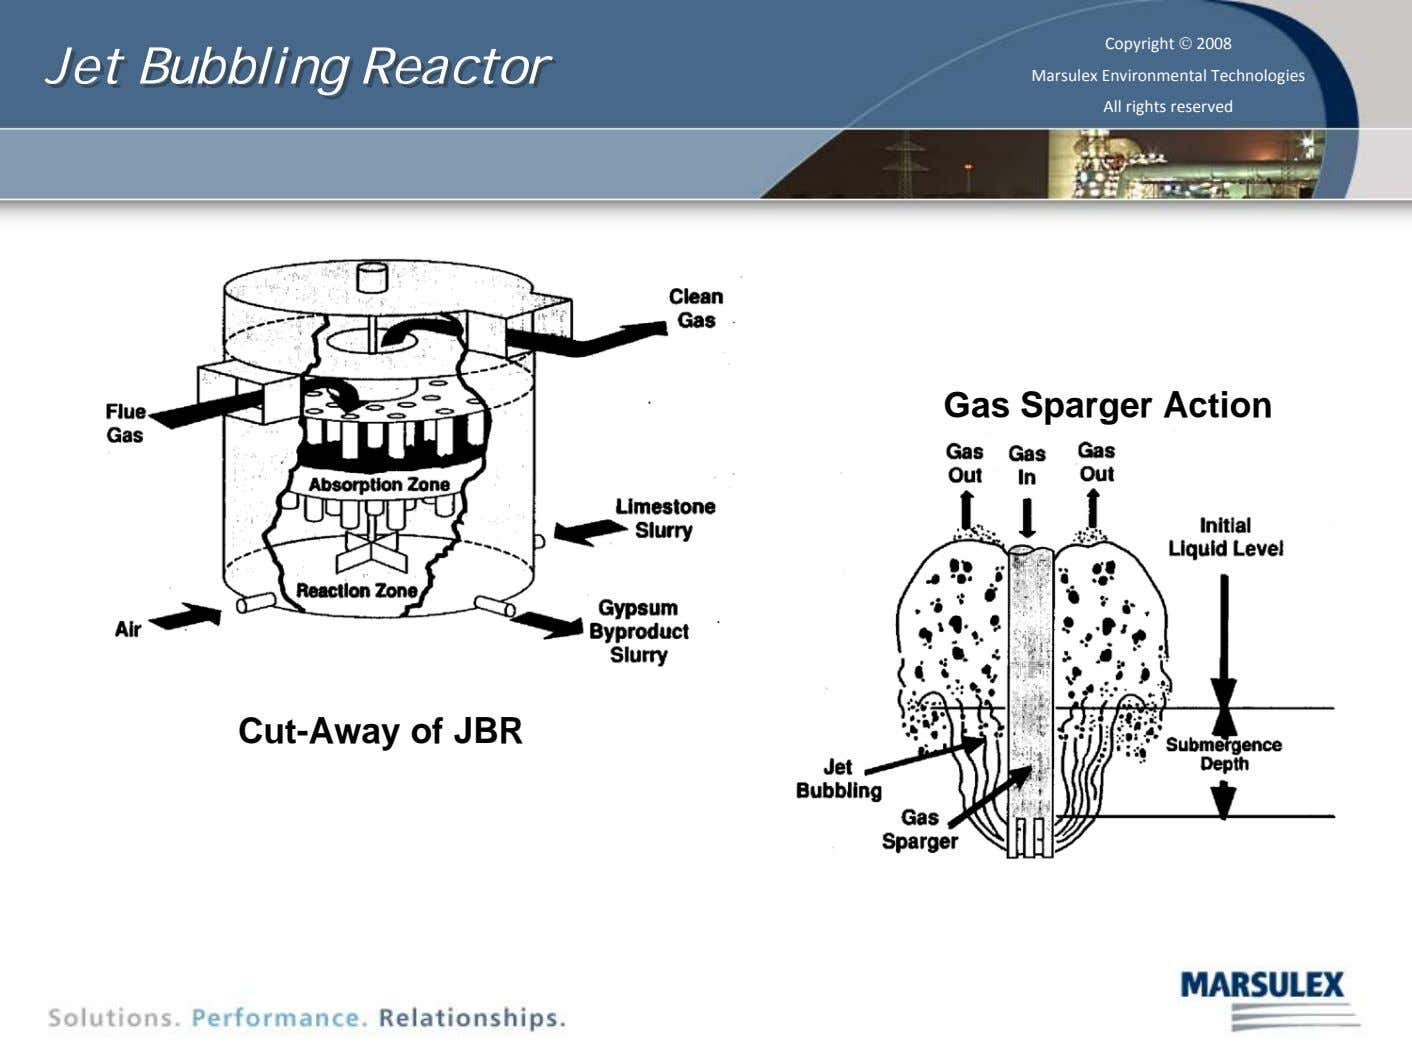 Jet Jet Bubbling Bubbling Reactor Reactor Copyright © 2008 Marsulex Environmental Technologies All rights reserved Gas